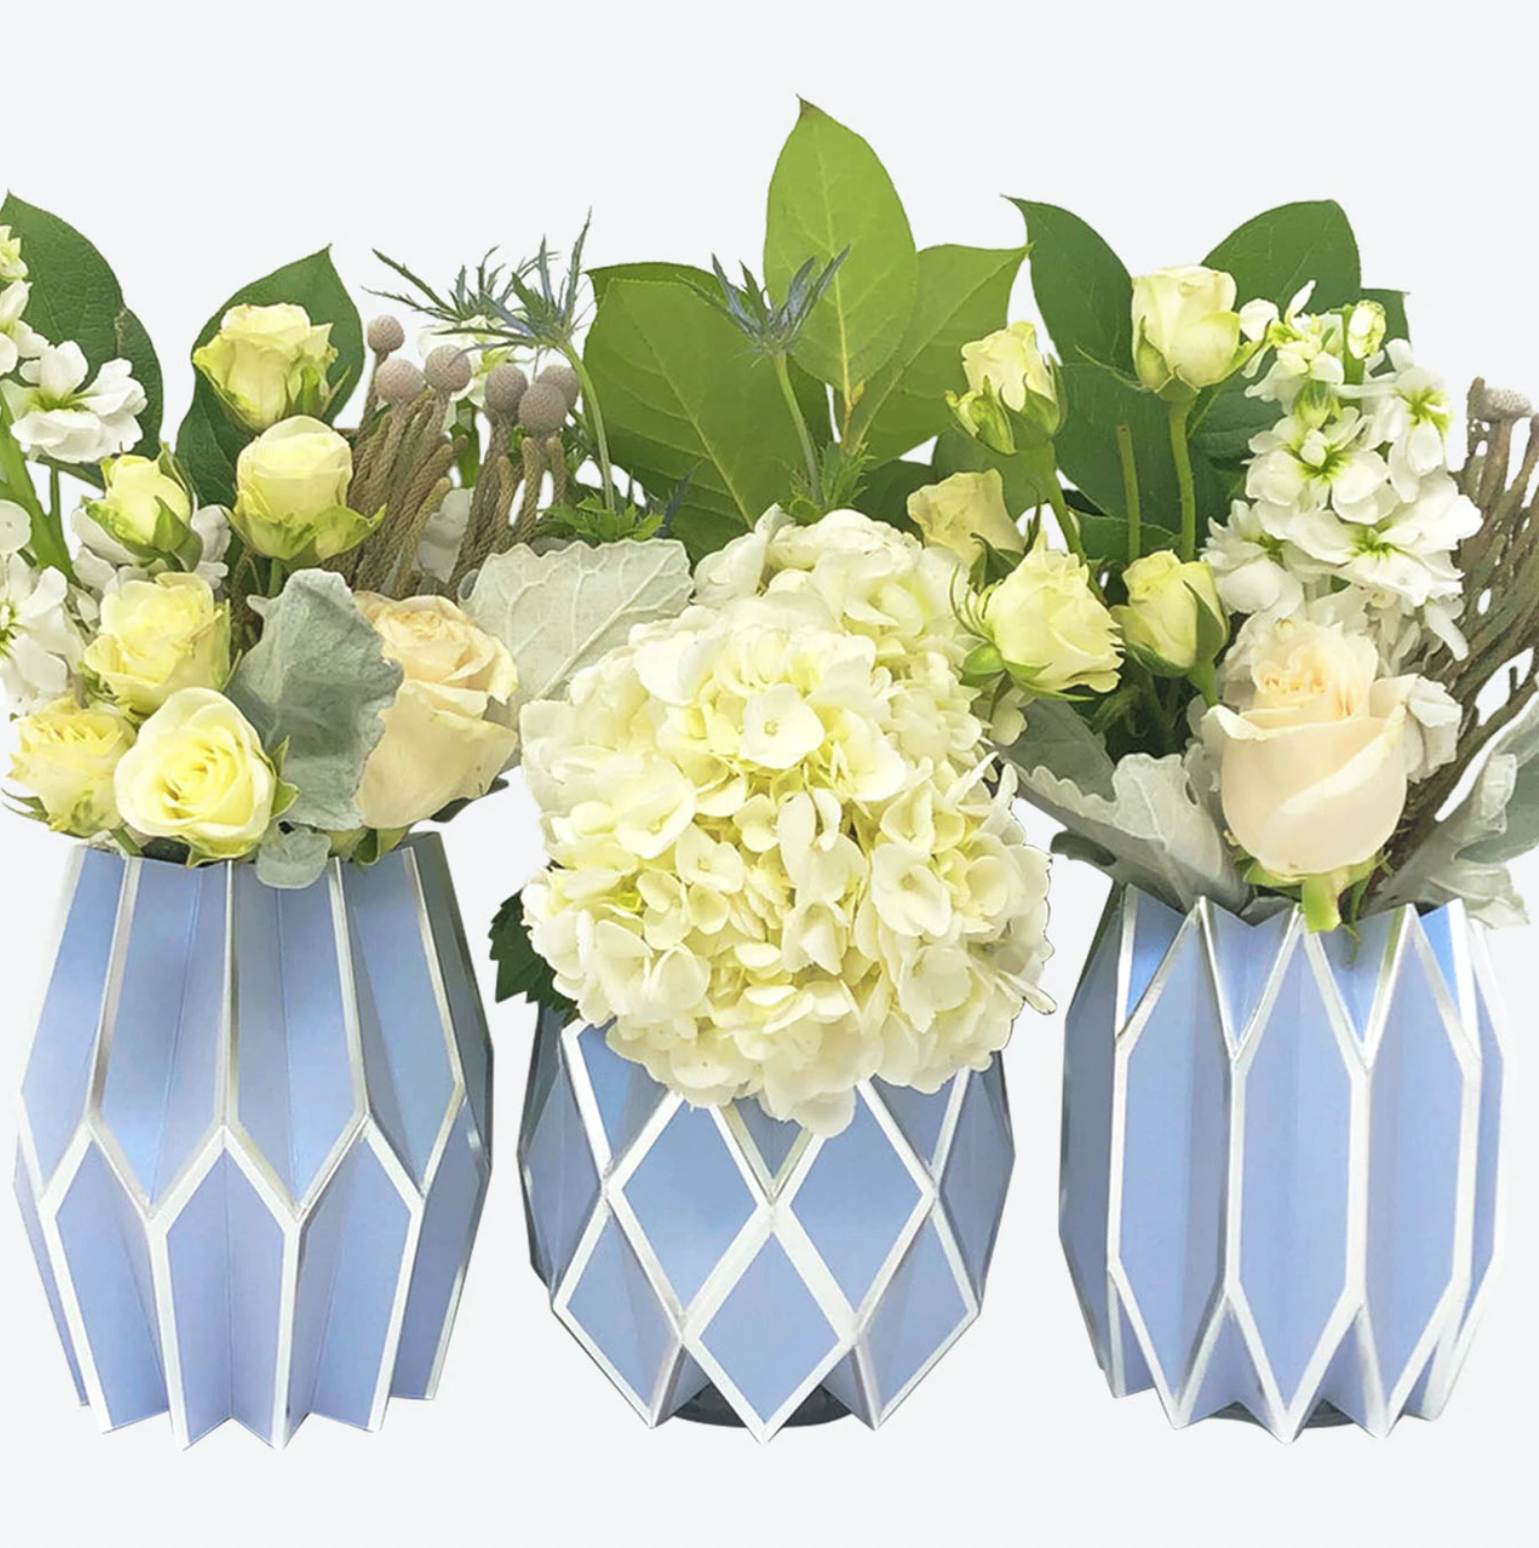 Lucy Grymes Vase Wraps - Periwinkle